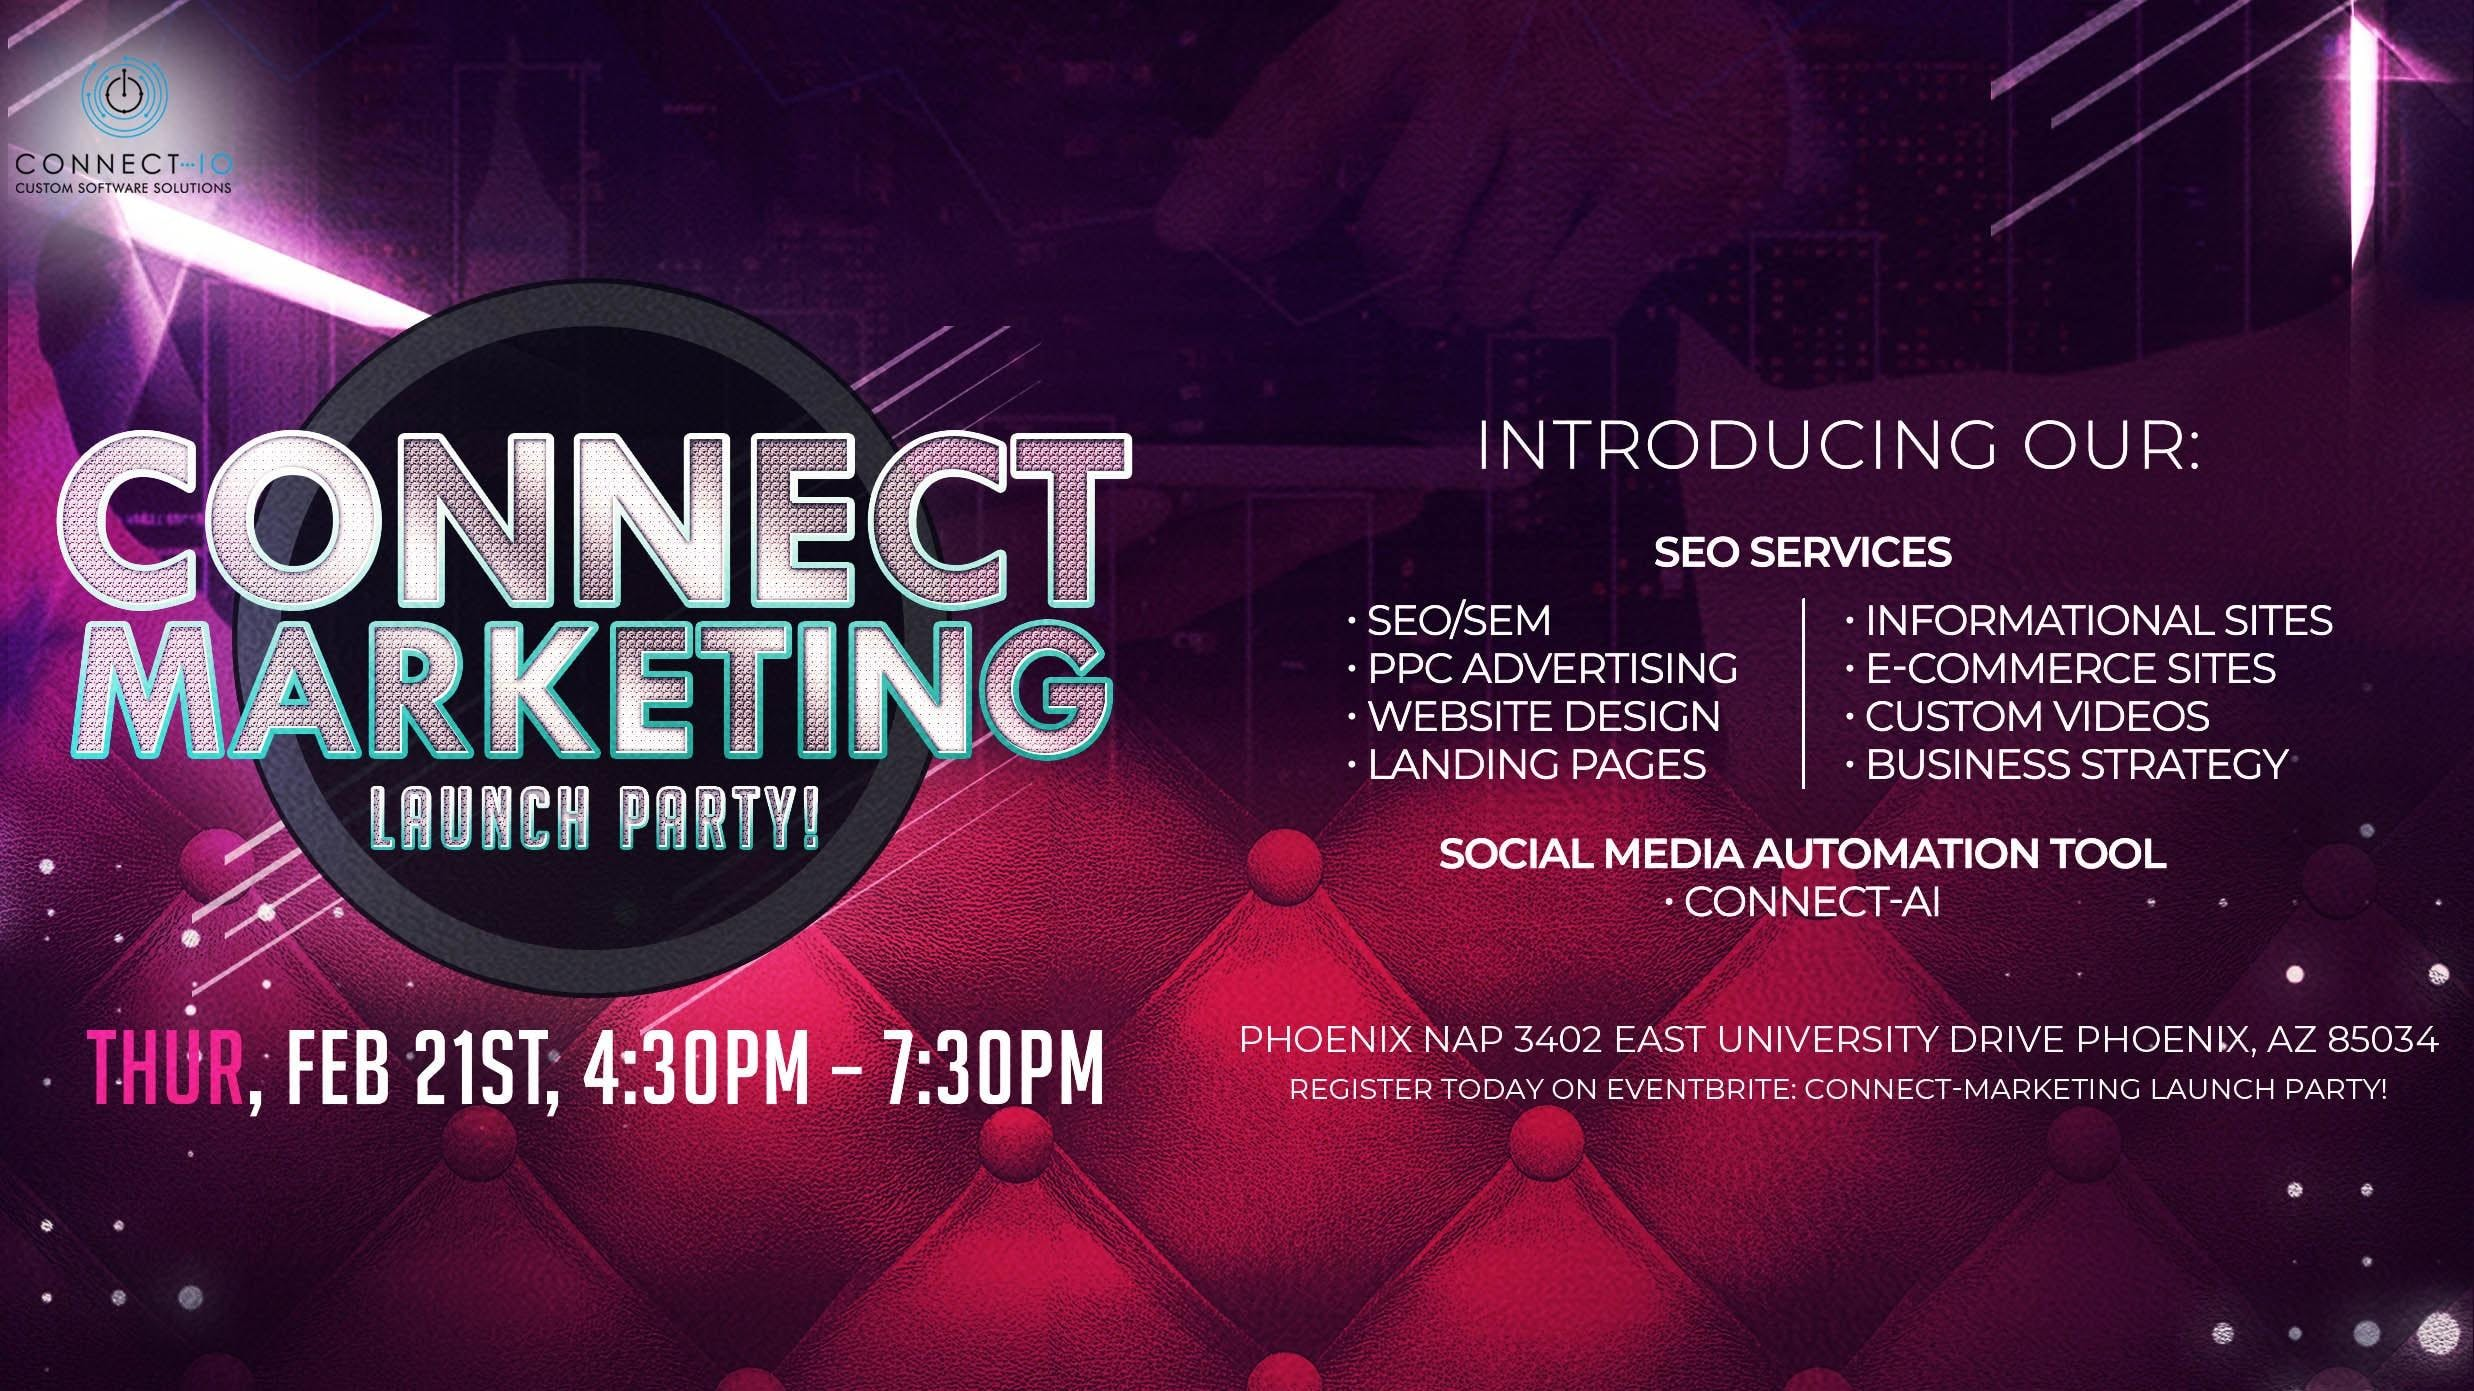 Connect-Marketing Launch Party!